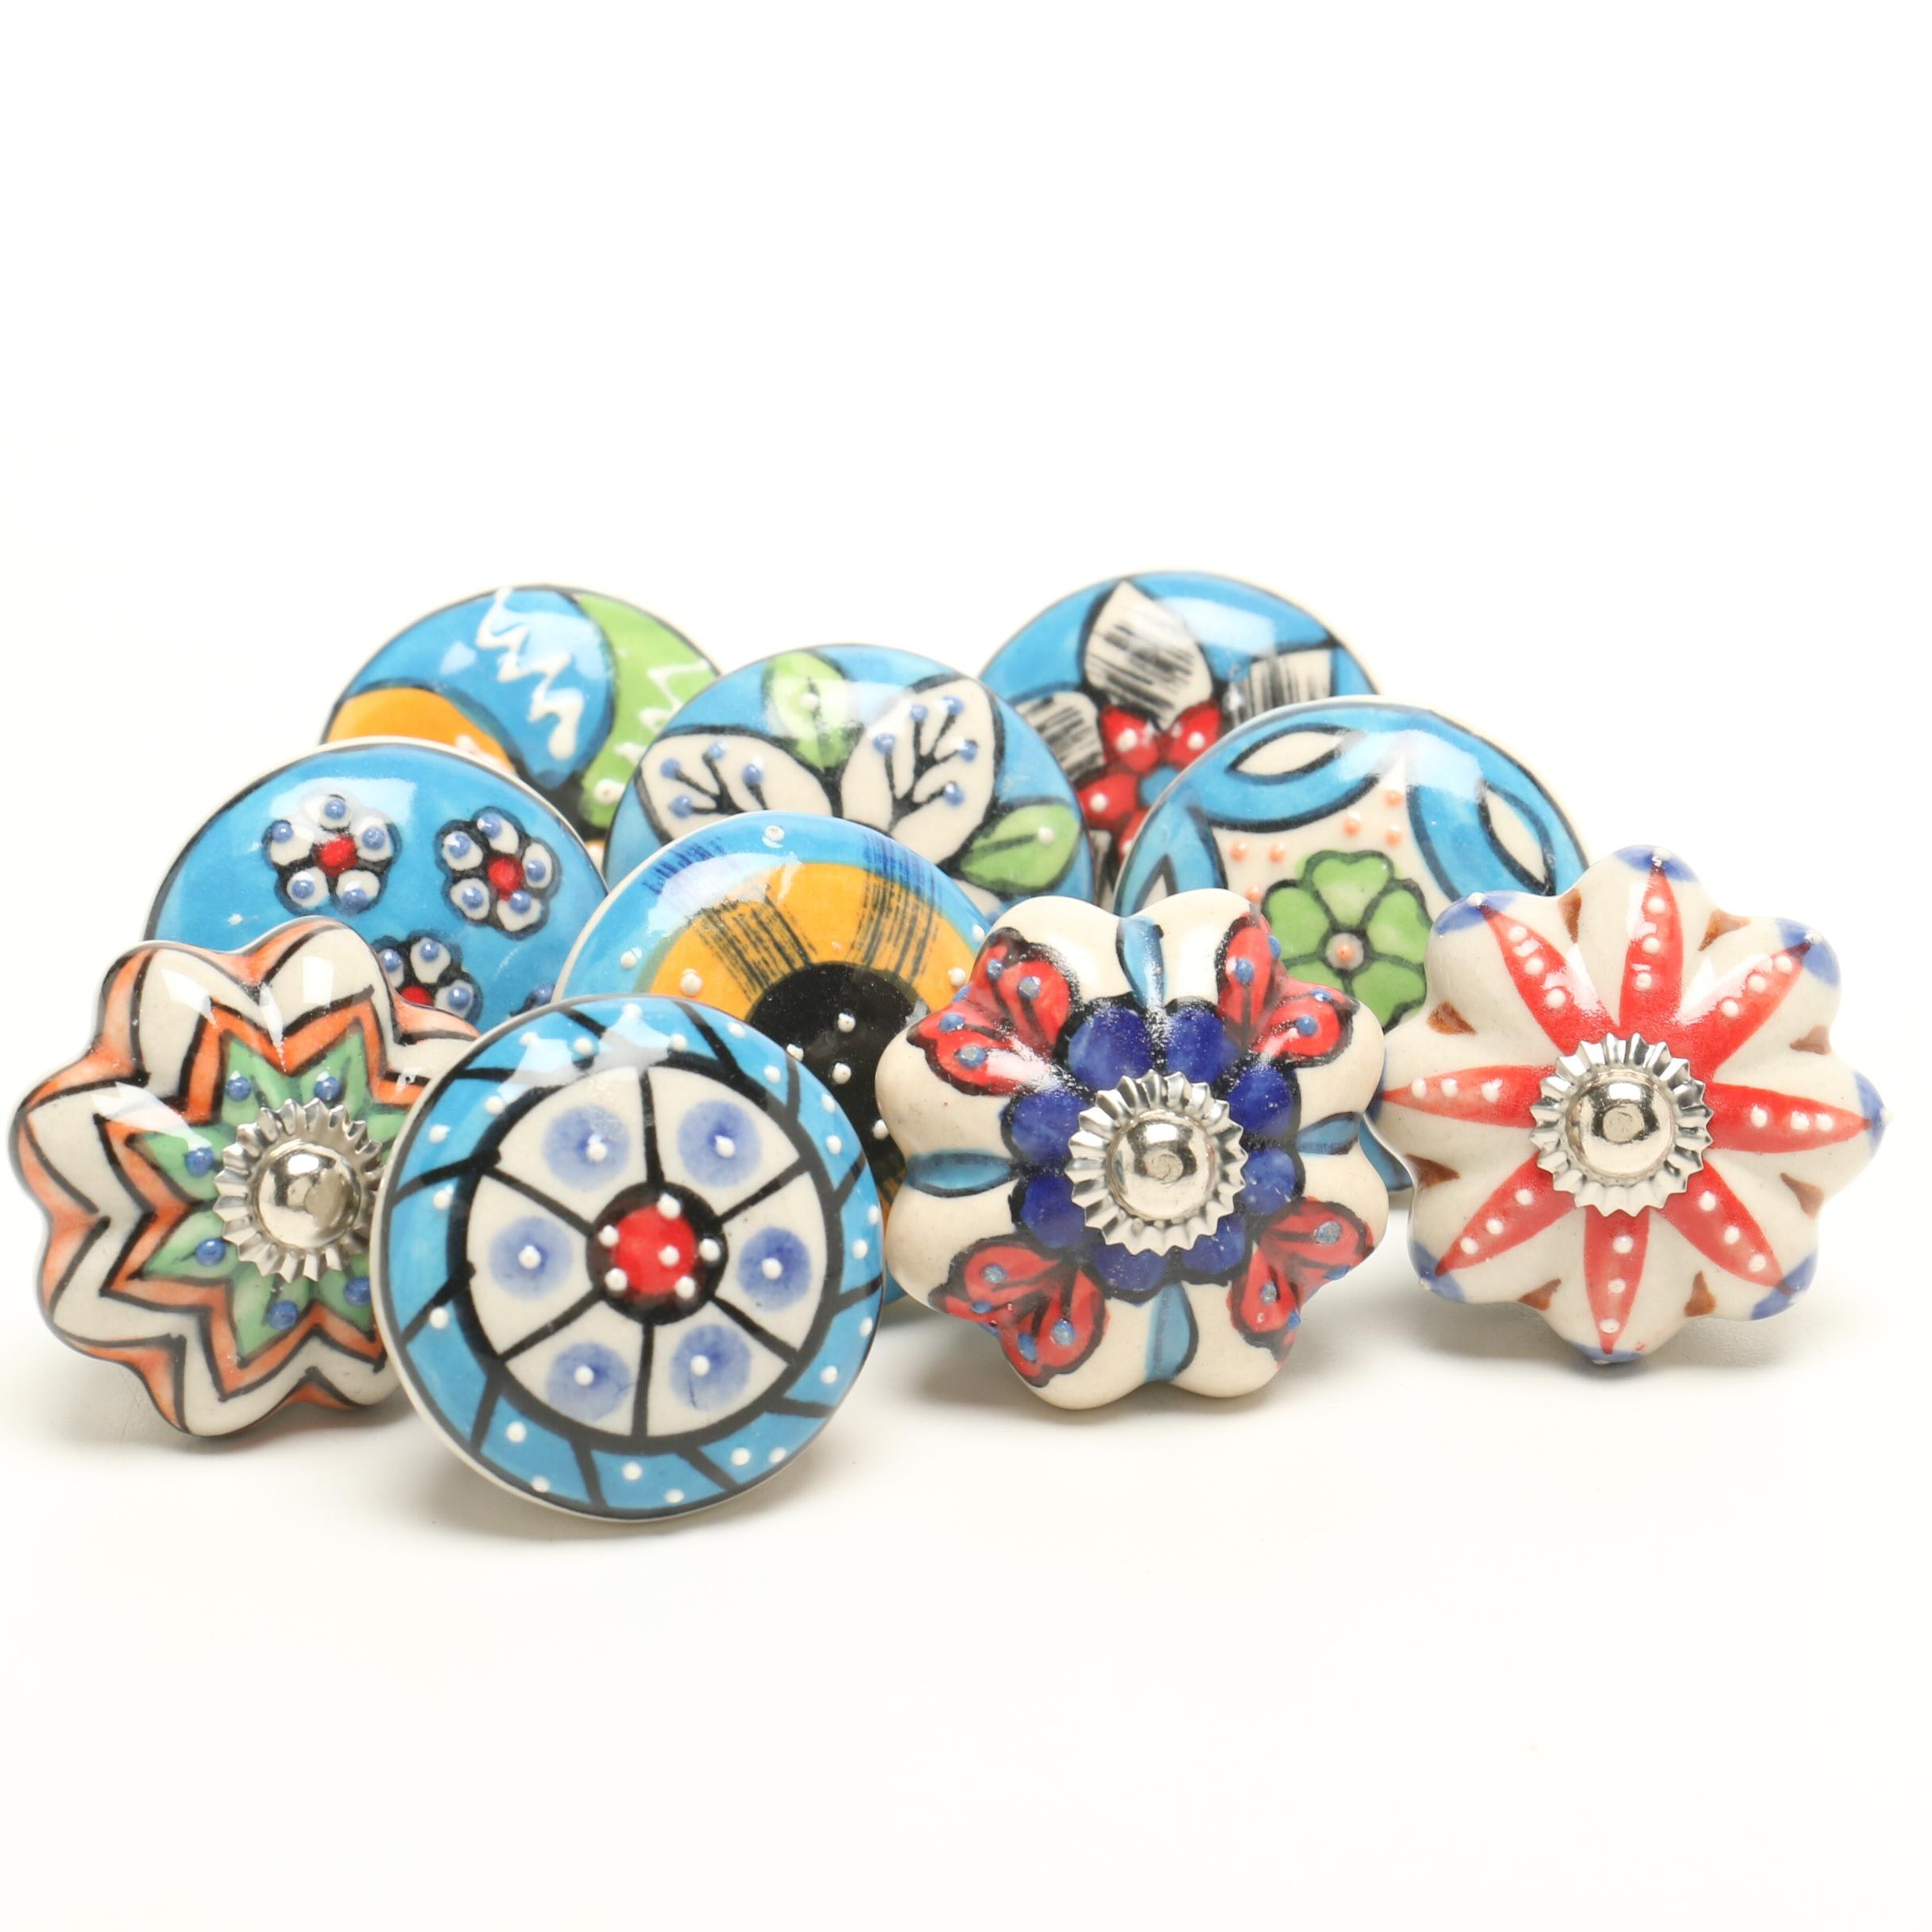 Hand-Painted Porcelain Drawer Pulls